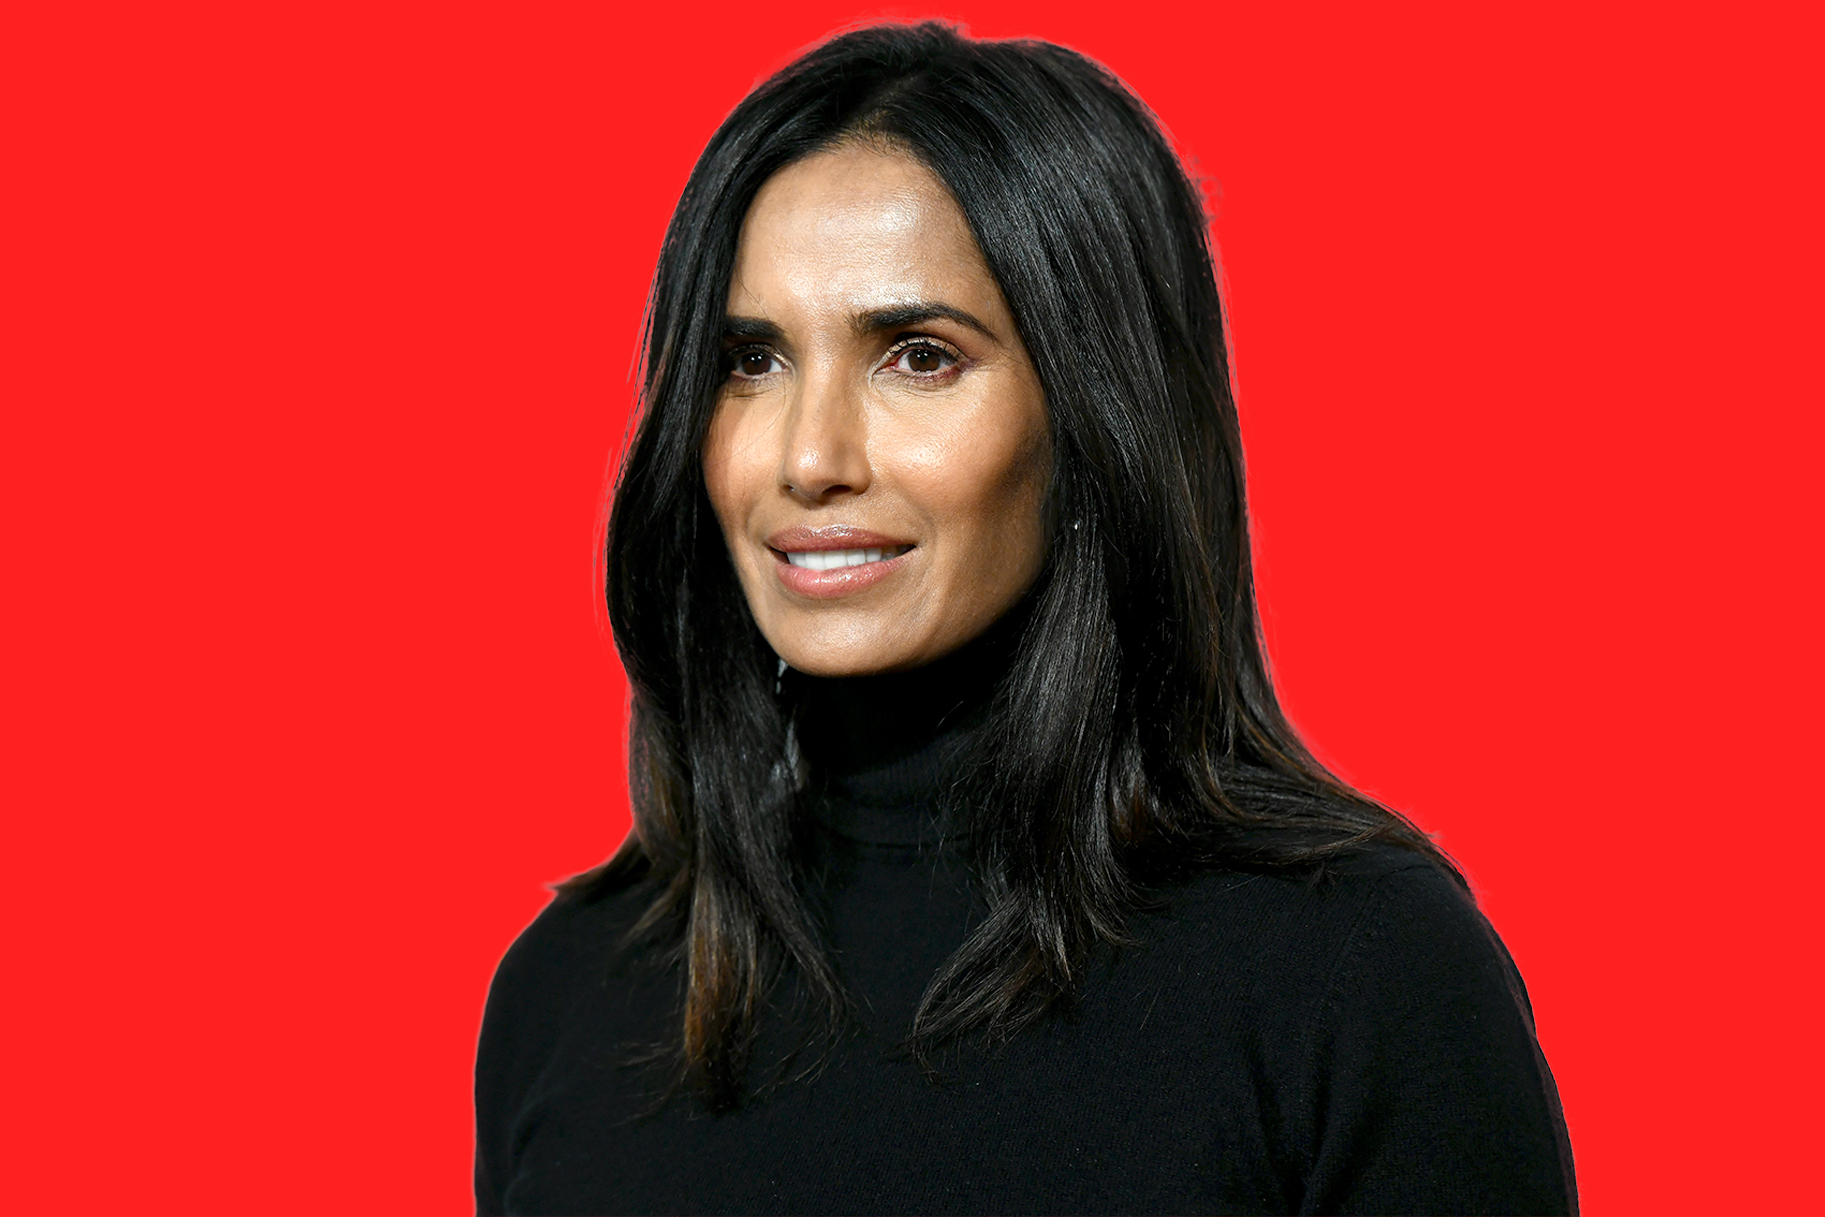 Top Chef Host Padma Lakshmi on the Waffle Mix Controversy